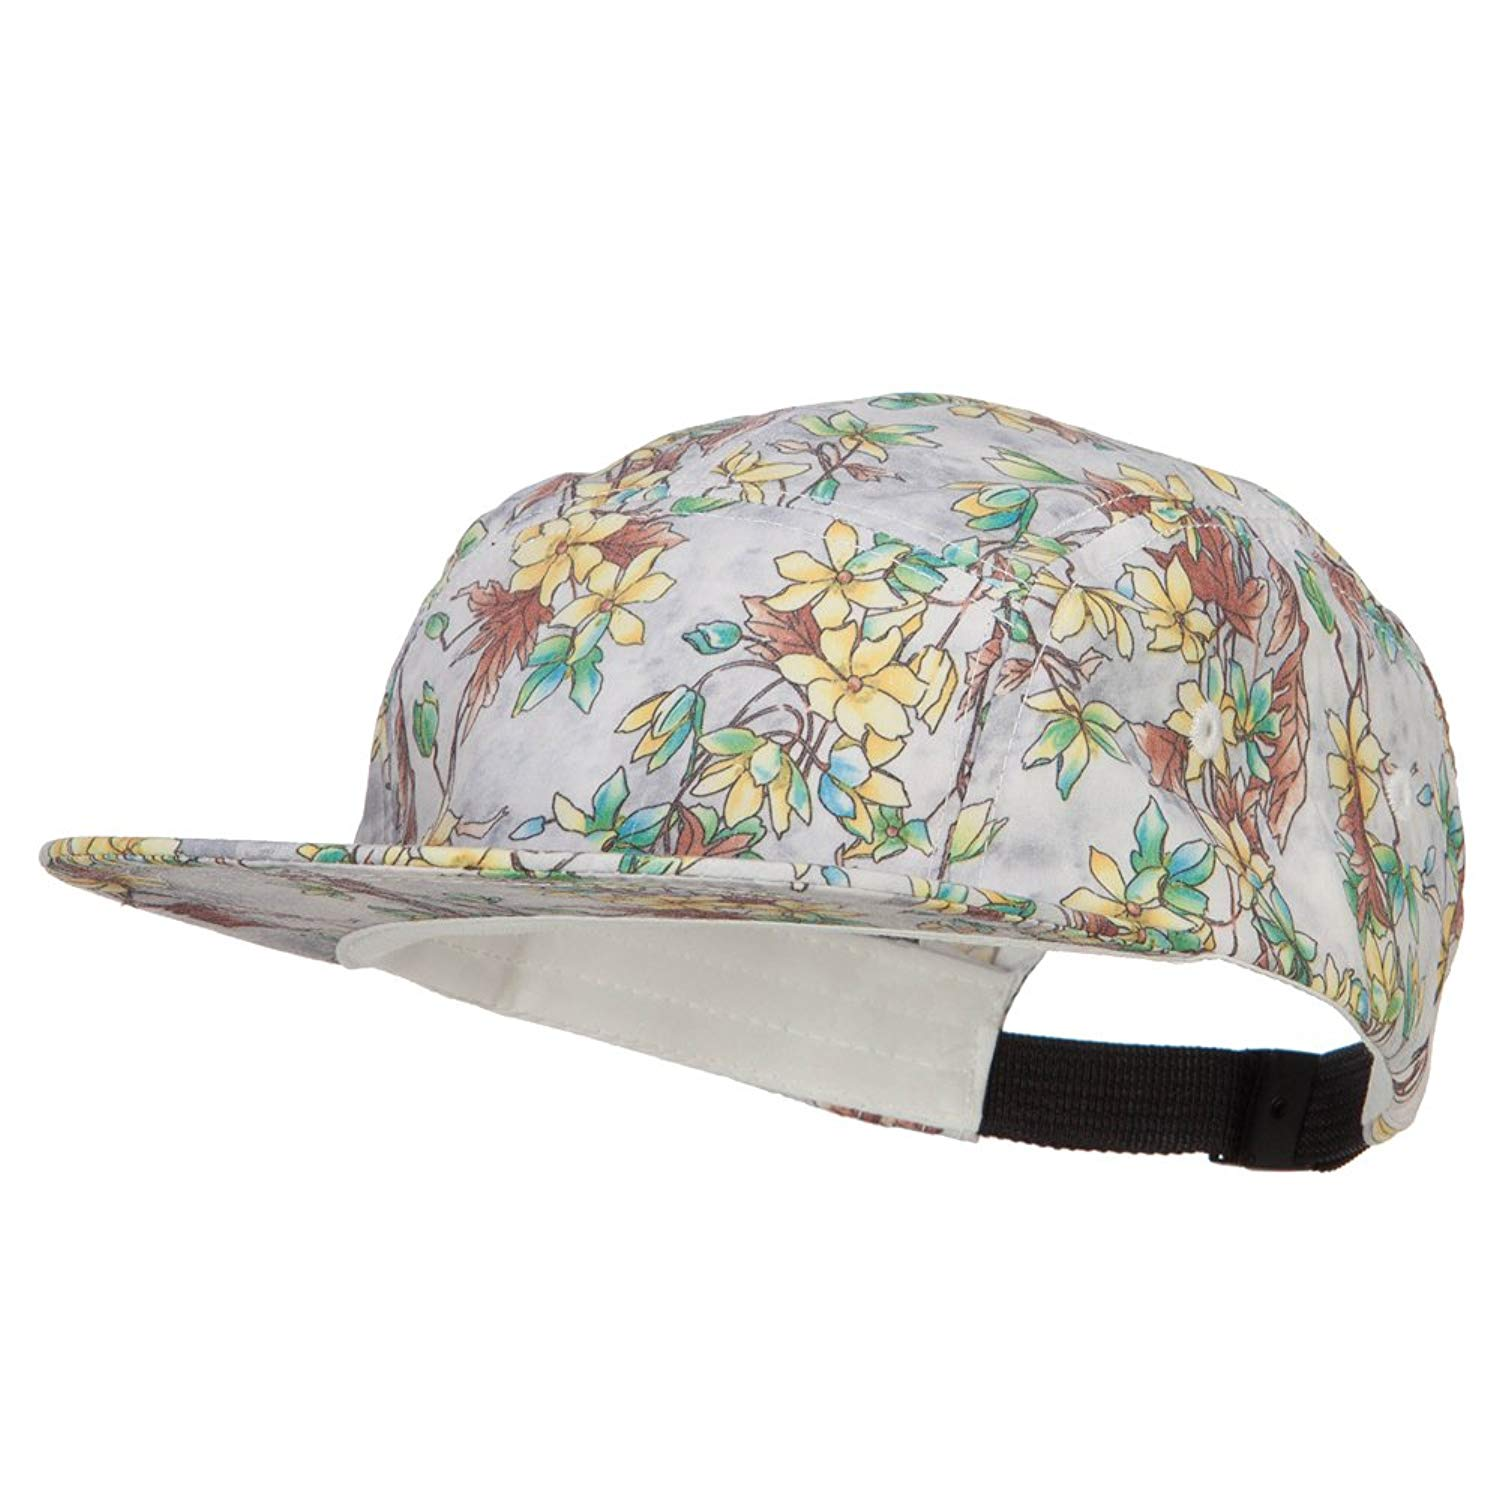 5bf4c91dd0c8be Cheap 5 Panel Huf Cap, find 5 Panel Huf Cap deals on line at Alibaba.com